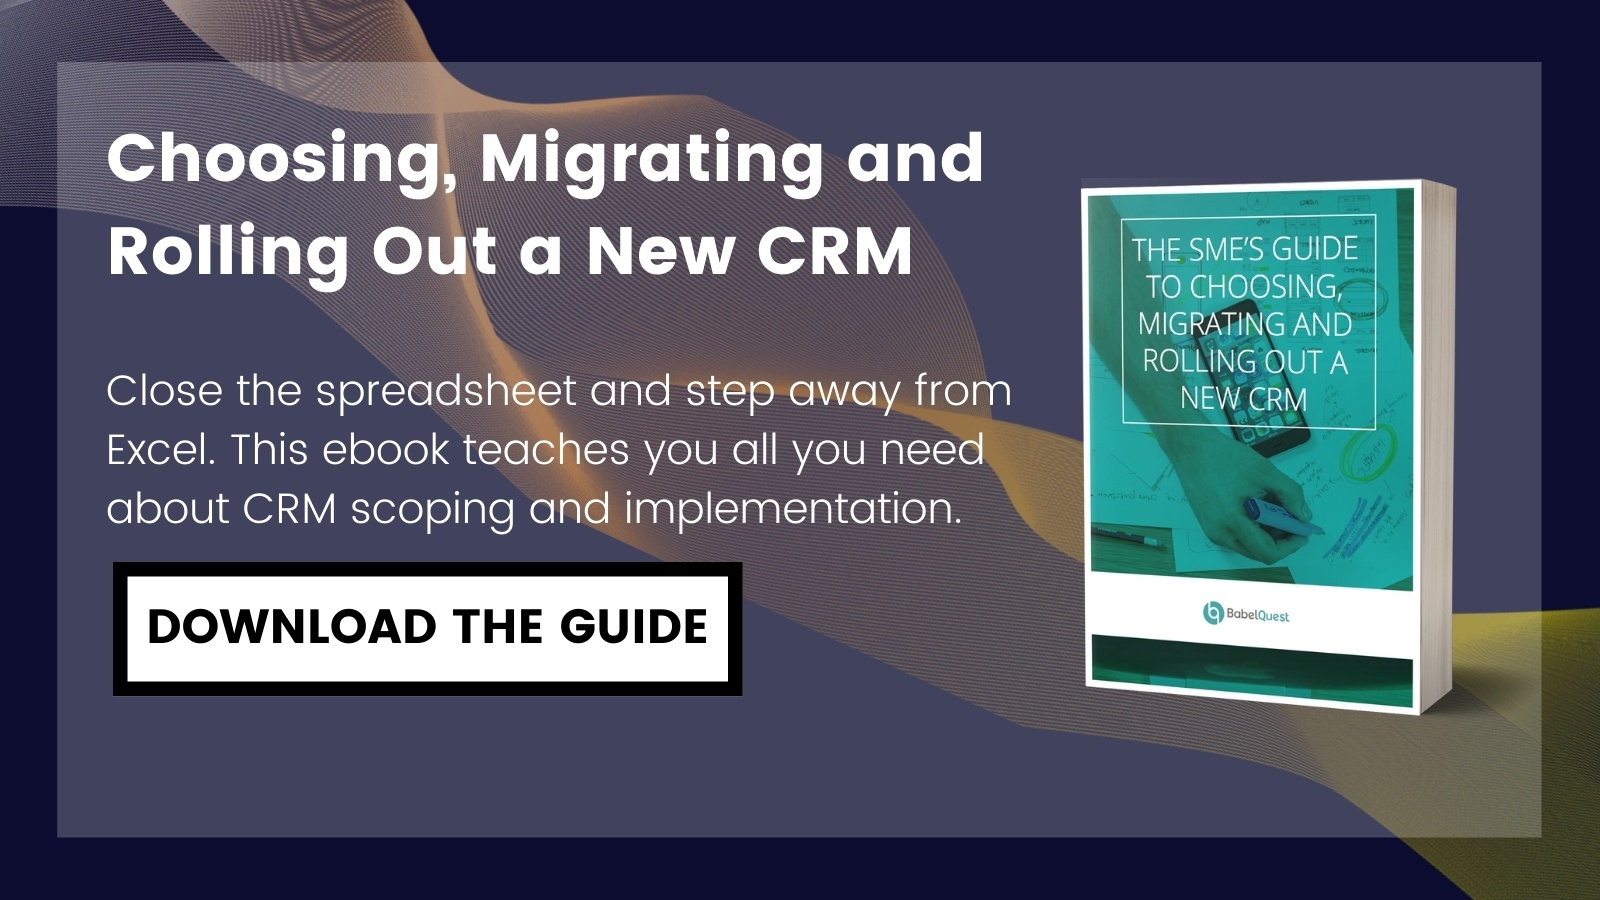 Learn more about choosing, migrating and rolling out a new CRM by downloading  our ebook